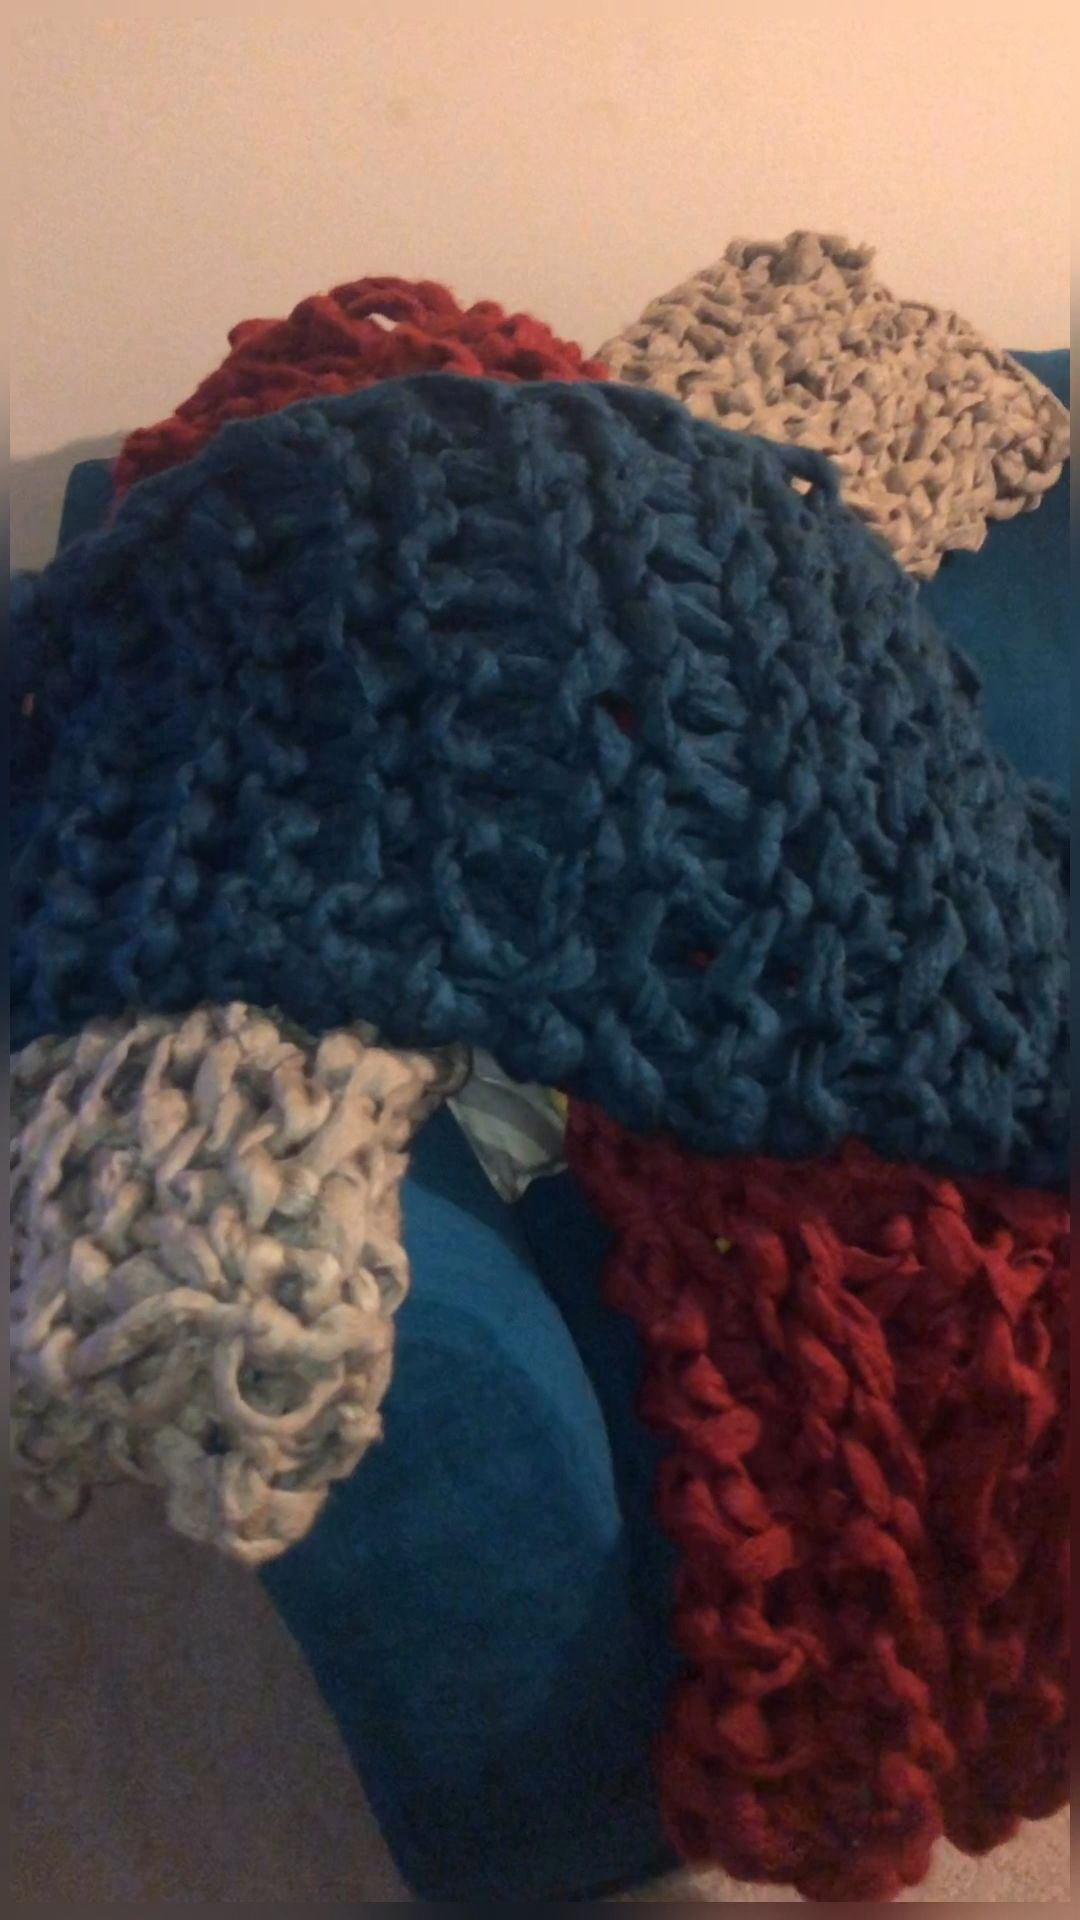 Photo of Large armknitted blankets